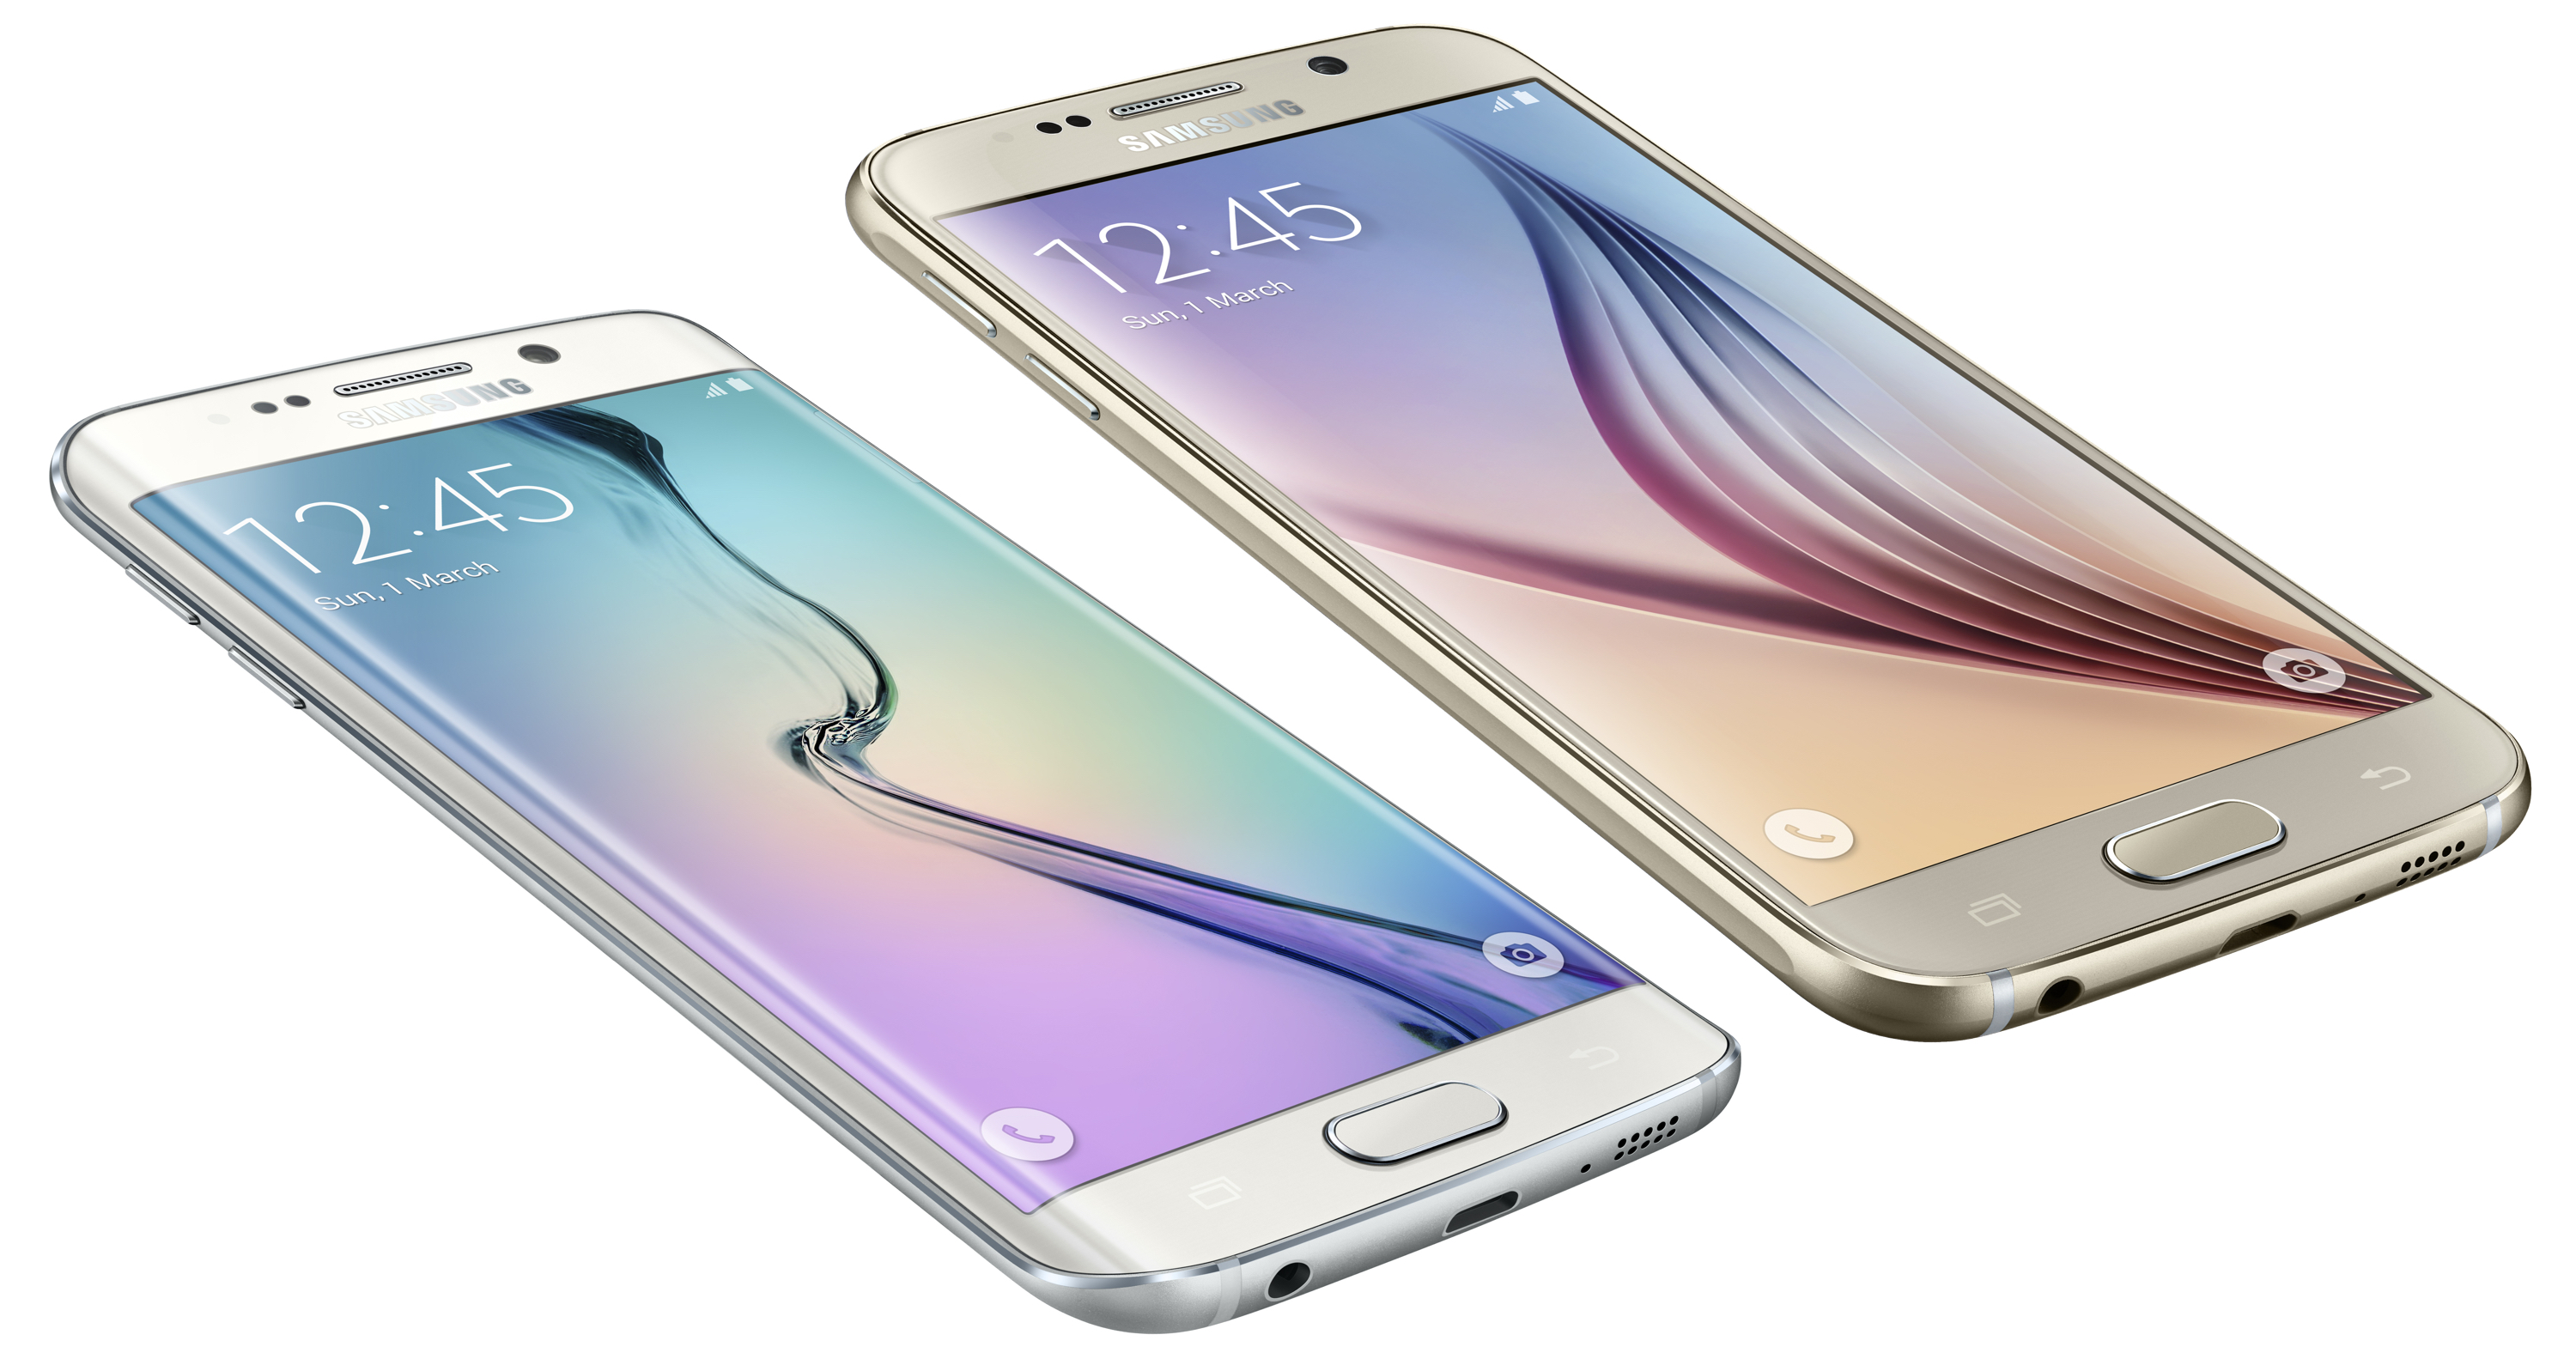 samsung galaxy s6 vs galaxy s6 edge 6 key differences. Black Bedroom Furniture Sets. Home Design Ideas